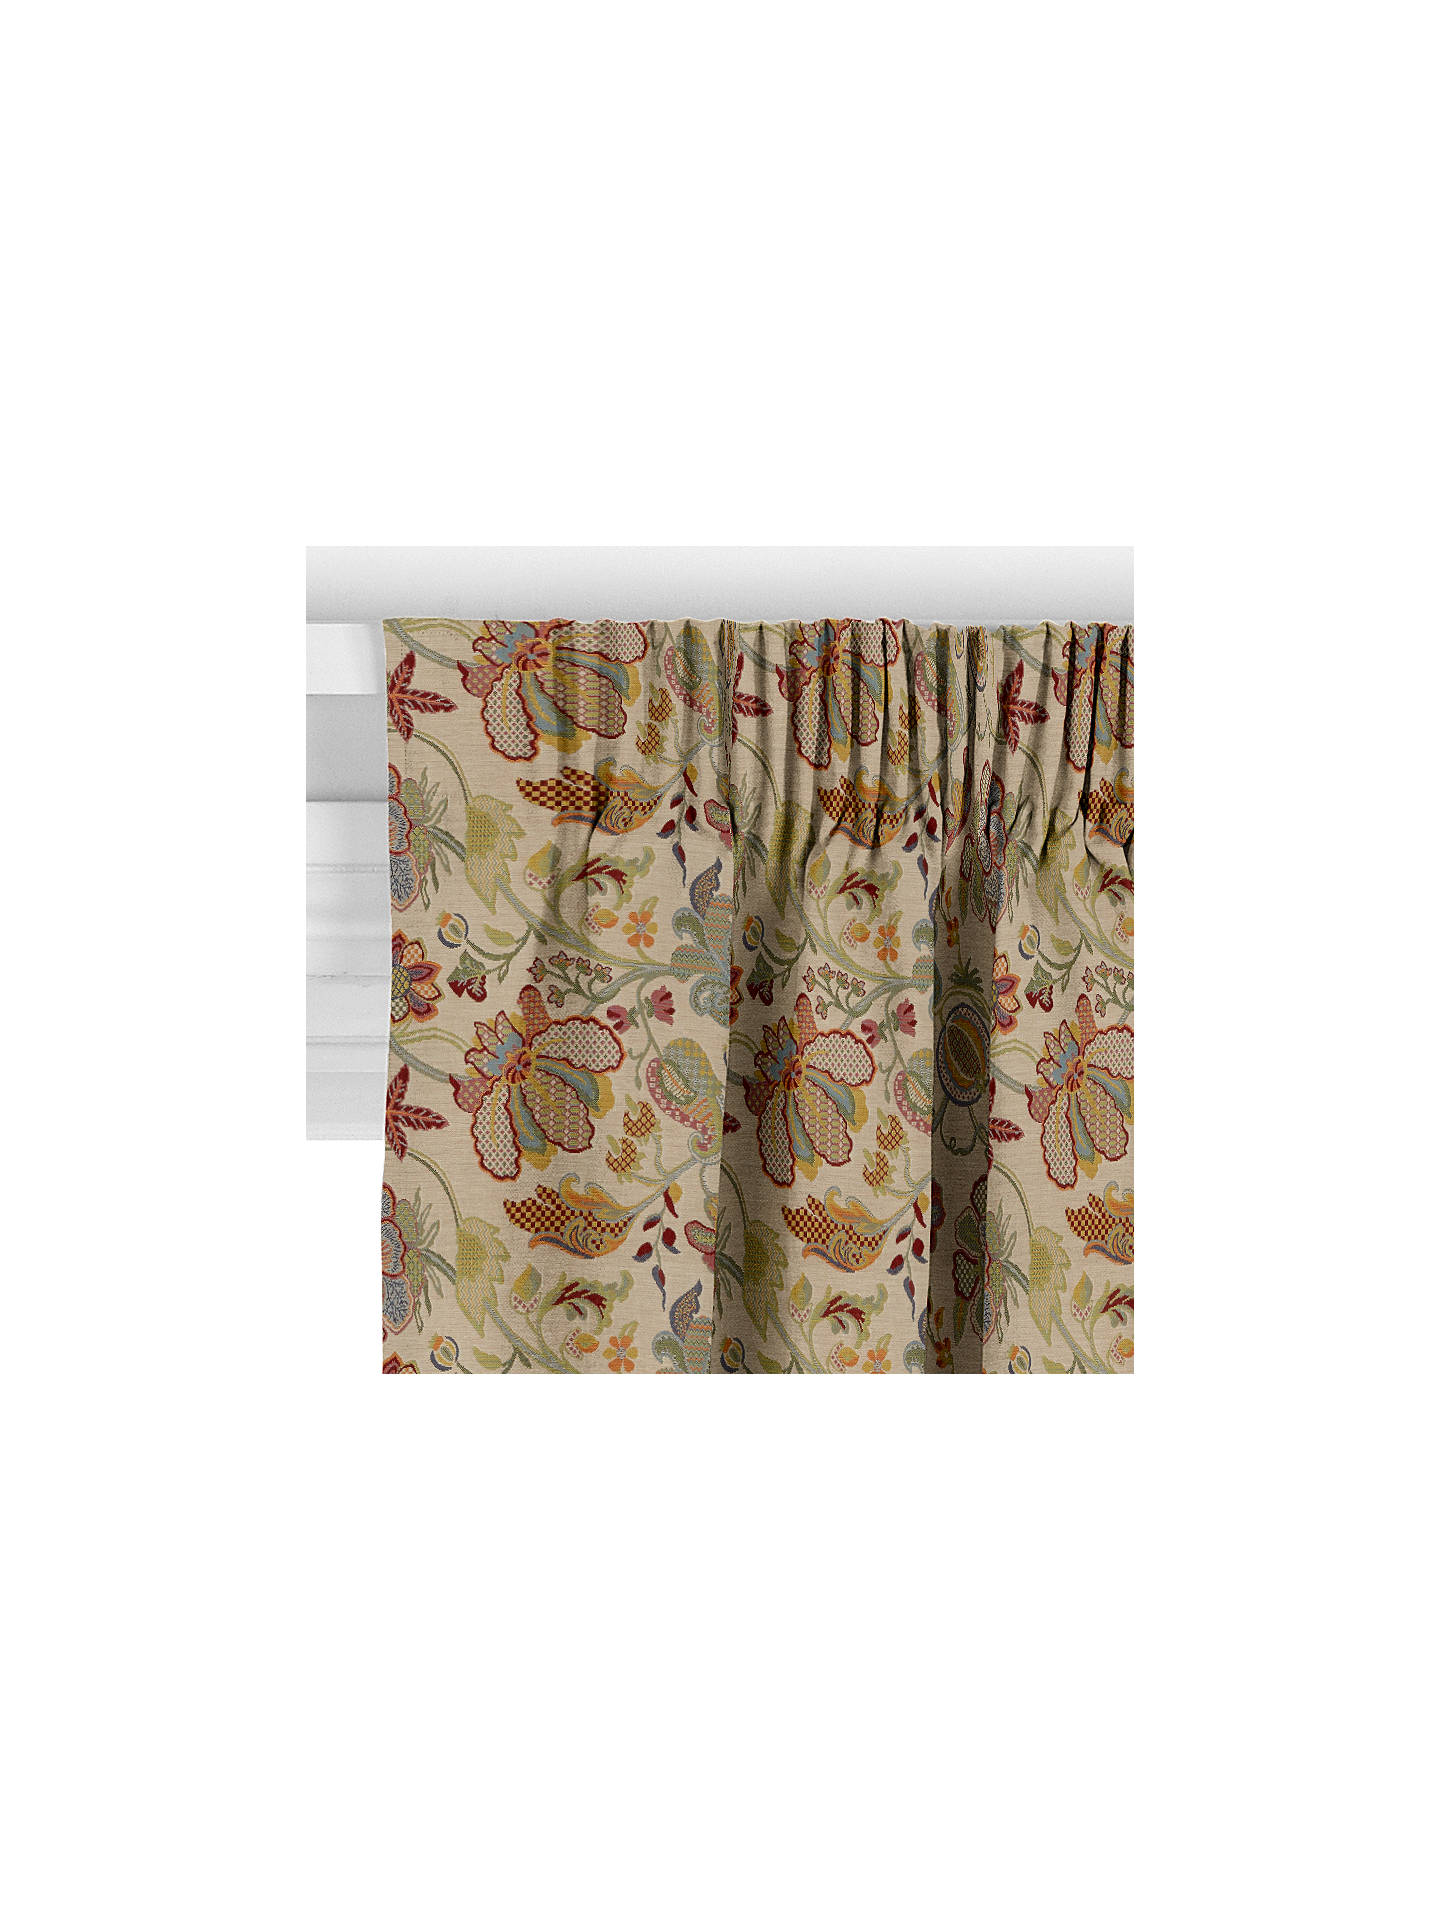 BuyJohn Lewis & Partners Fotheringay Curtain, Multi Online at johnlewis.com